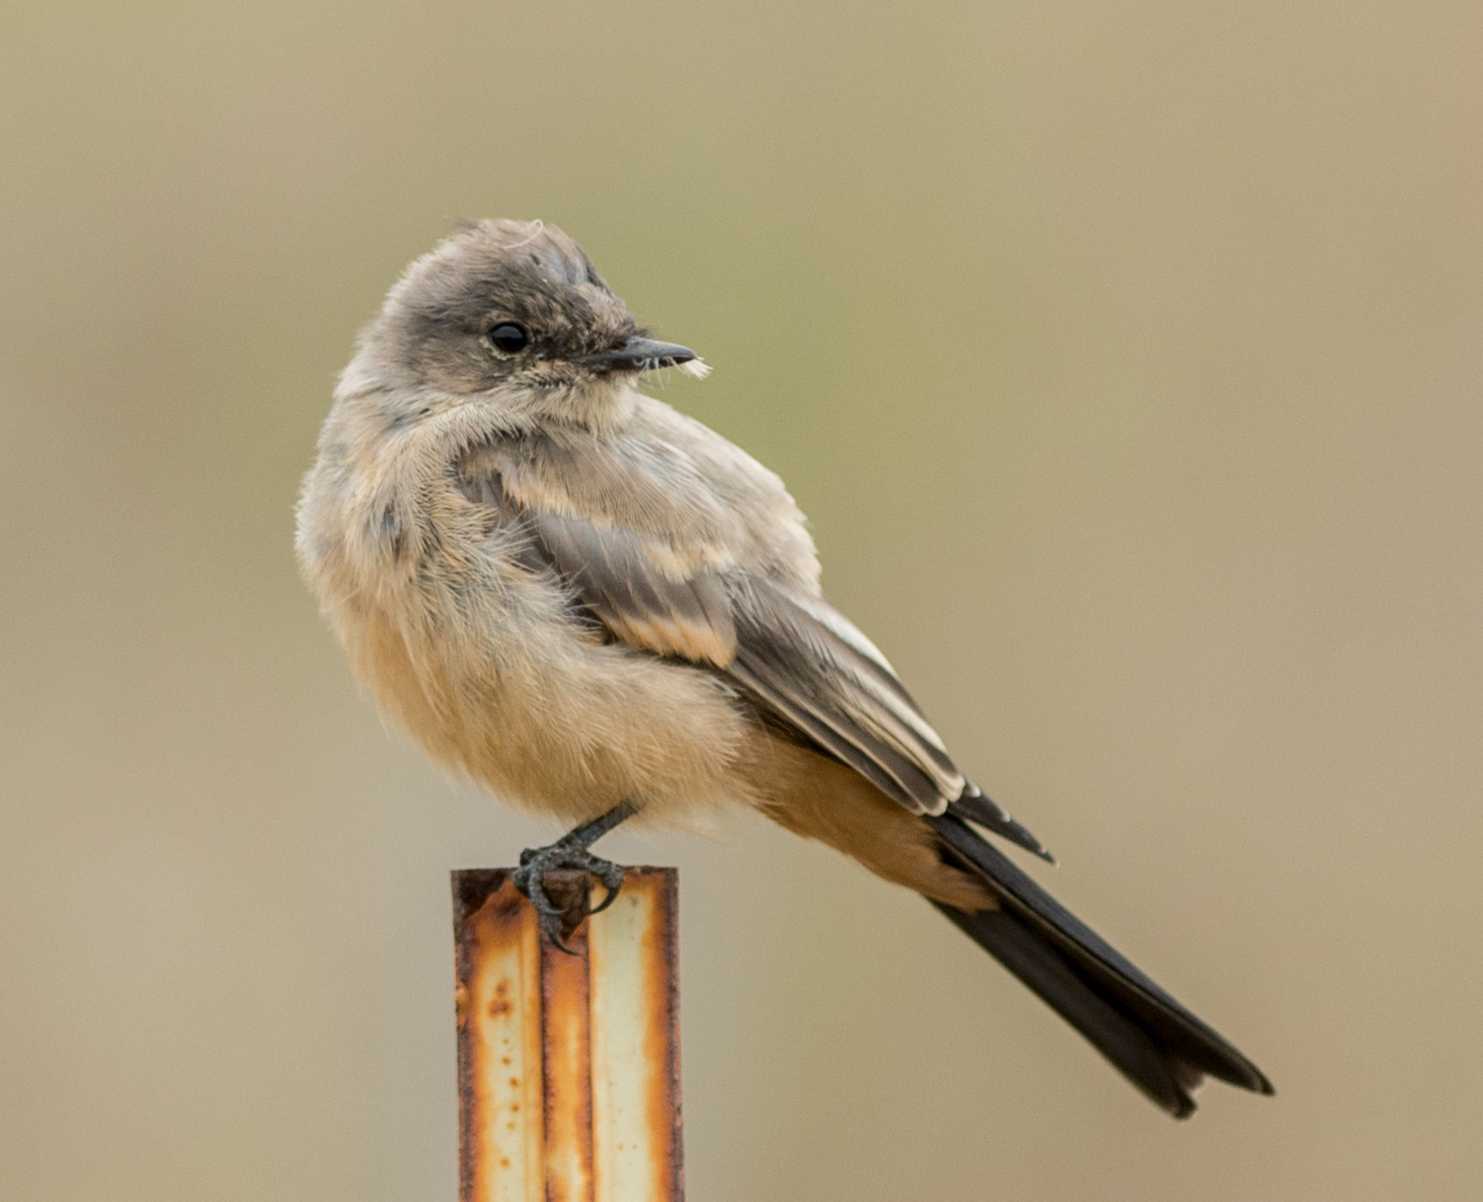 Featured Photo 27:  Say's Phoebe  ( Sayornis saya ) at Terrace Point  EQ: D800 300mm f/2.8  Taken: 5-16-15 10:02  Setting: 300mm, 1/2000s, f/2.8, ISO360